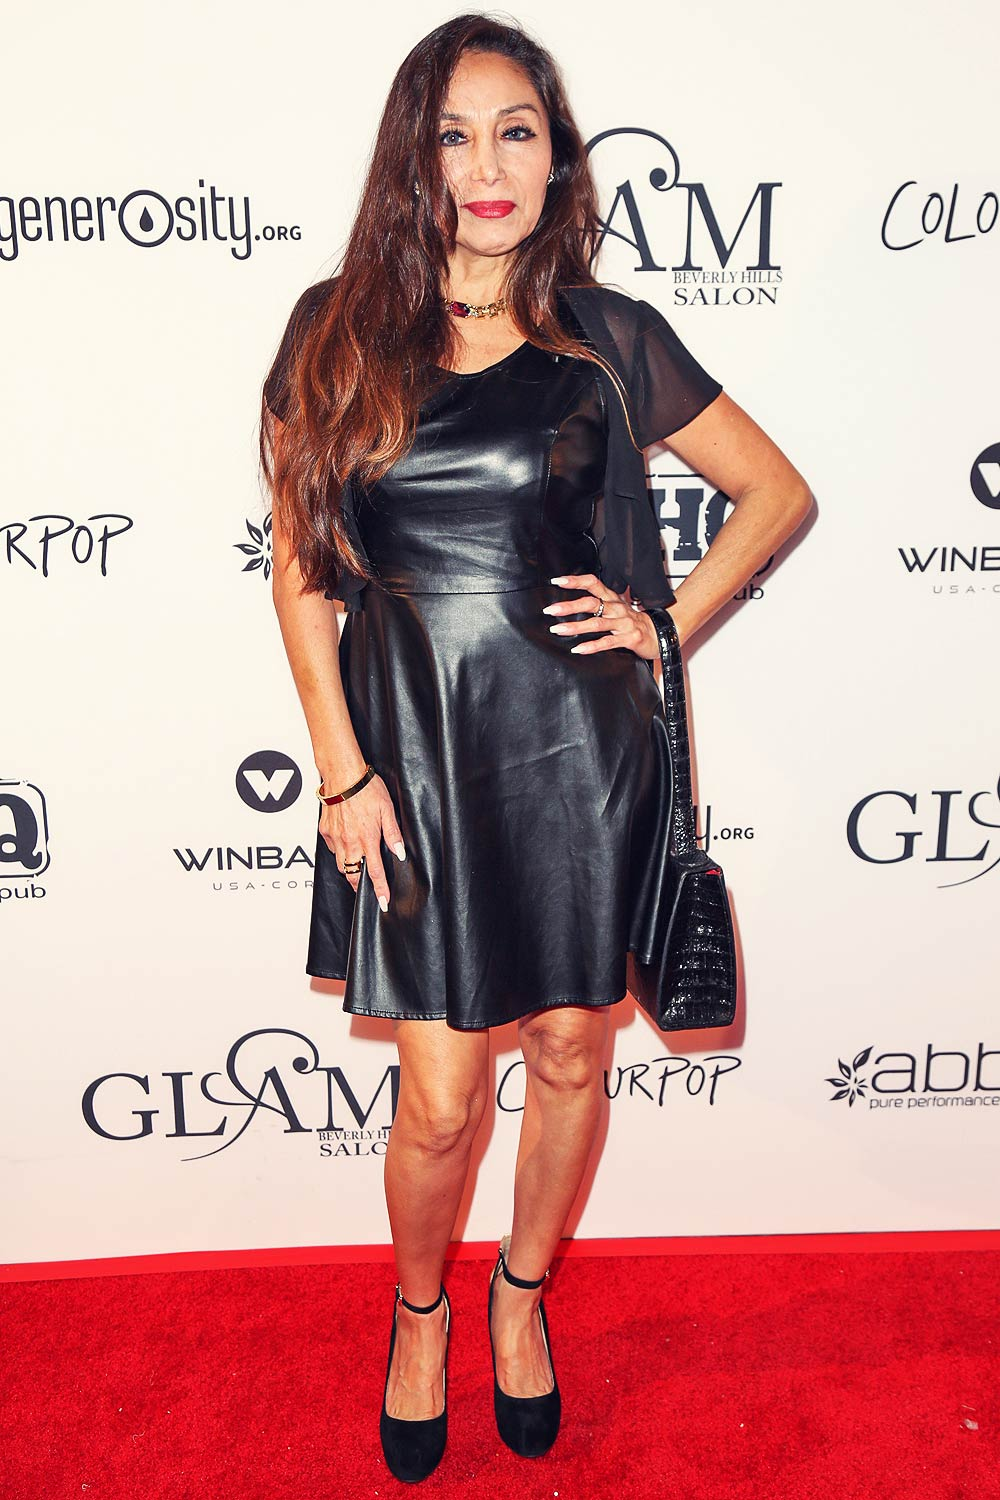 Sylvia Sylver attends GLAM Beverly Hills Salon Grand Opening and Ribbon Cutting Celebration